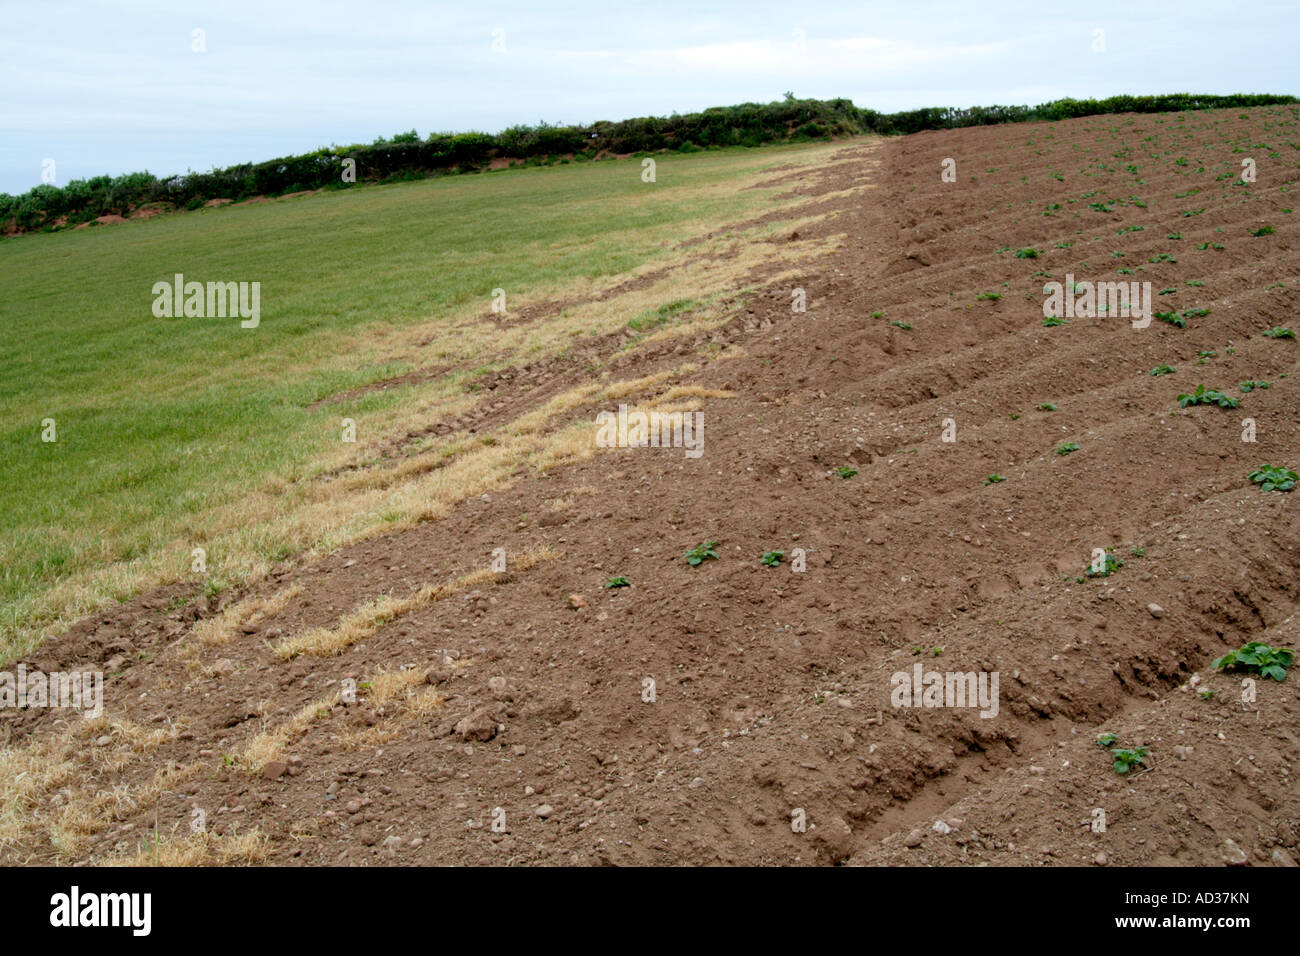 Herbicide spray drift used on the emerging potato crop damages an adjacent grass crop - Stock Image